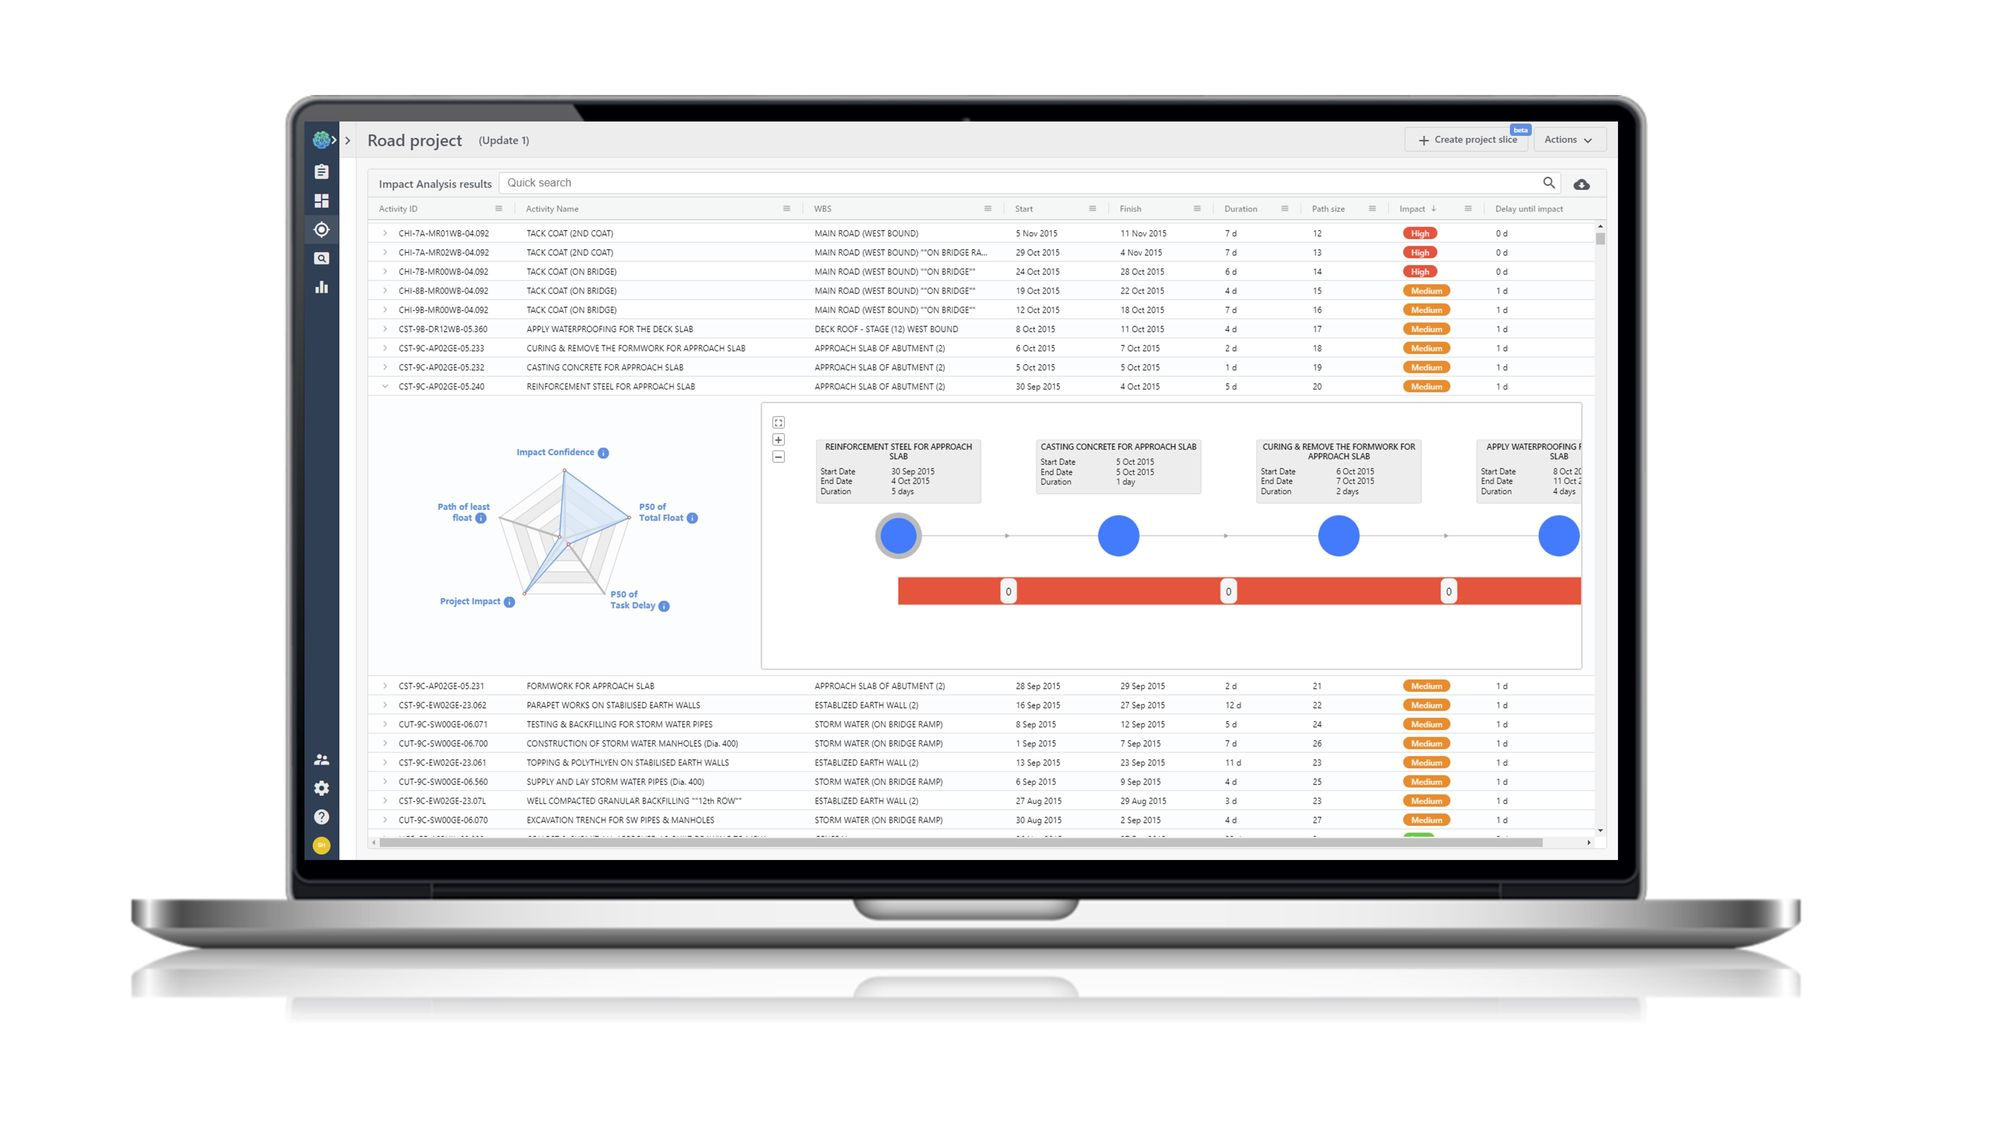 Nodes-and-Links-Aegis-scheduling-analytics-tool